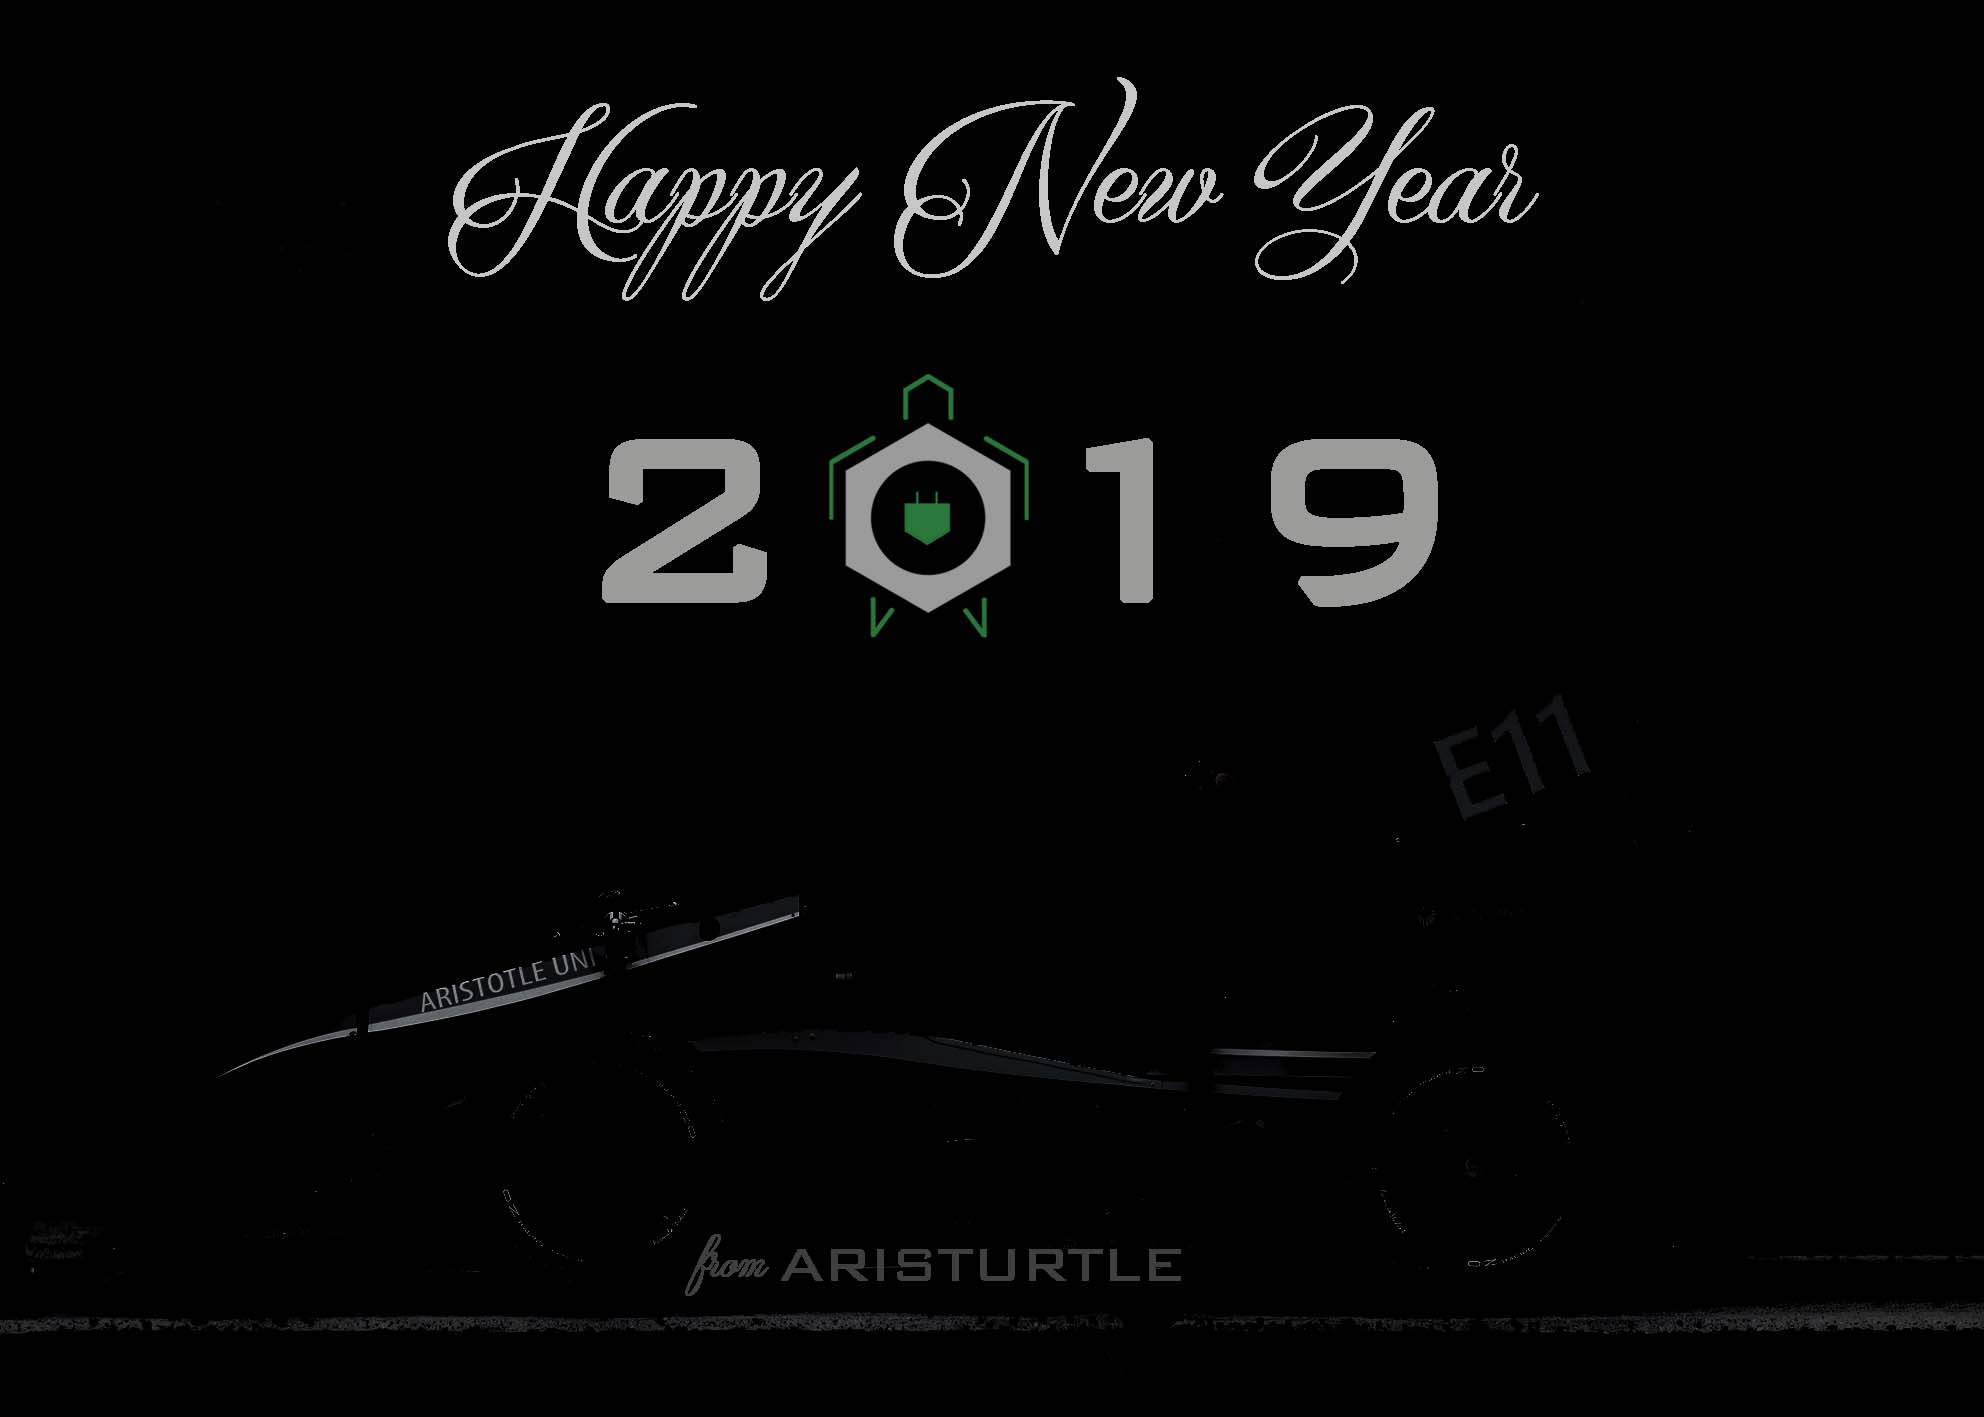 Aristurtle wishes you a Happy New Year!